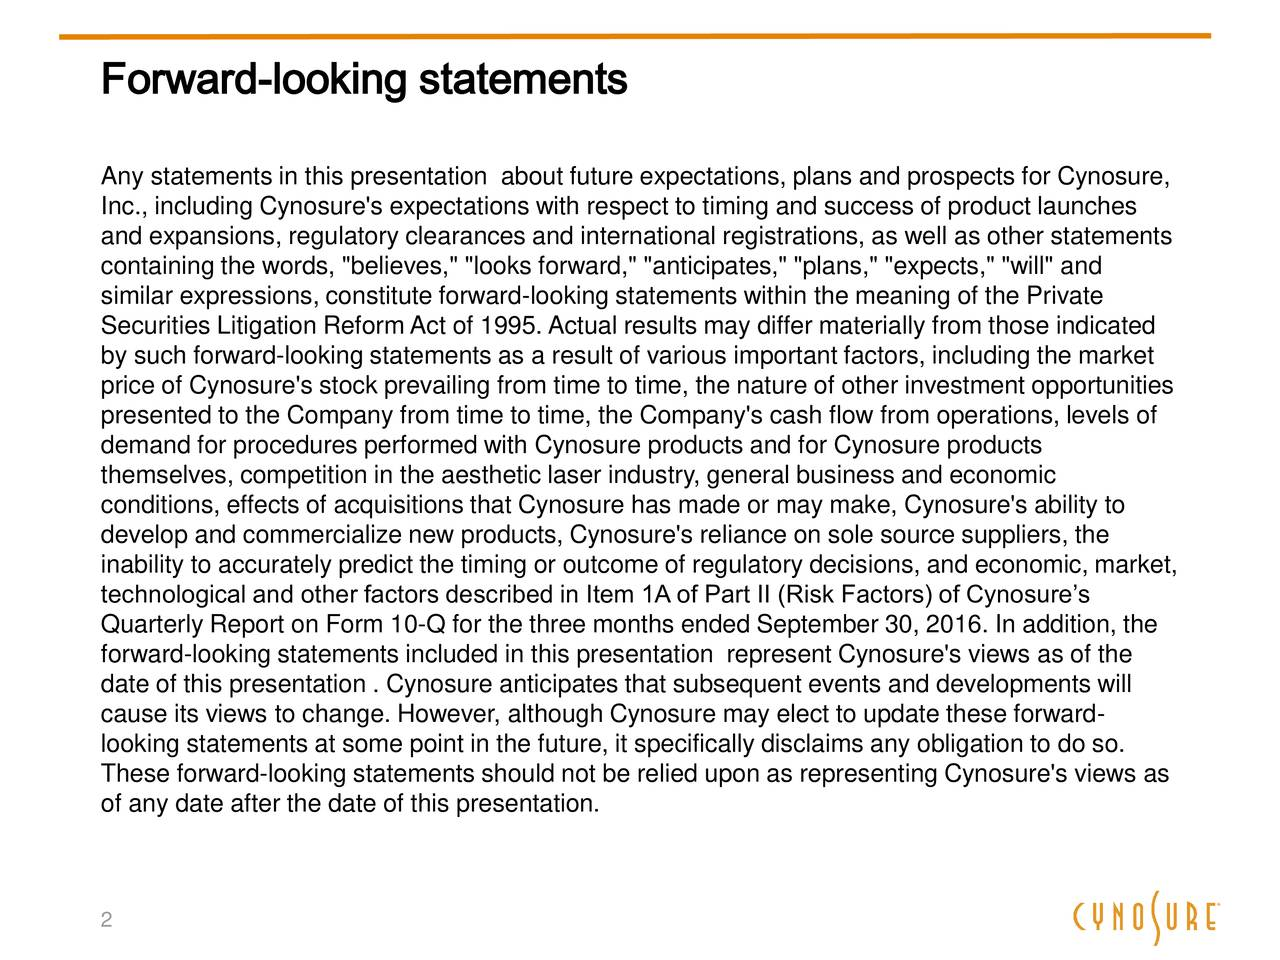 """Any statements in this presentation about future expectations, plans and prospects for Cynosure, Inc., including Cynosure's expectations with respect to timing and success of product launches and expansions, regulatory clearances and international registrations, as well as other statements containing the words, """"believes,"""" """"looks forward,"""" """"anticipates,"""" """"plans,"""" """"expects,"""" """"will"""" and similar expressions, constitute forward-looking statements within the meaning of the Private Securities Litigation Reform Act of 1995. Actual results may differ materially from those indicated by such forward-looking statements as a result of various important factors, including the market price of Cynosure's stock prevailing from time to time, the nature of other investment opportunities presented to the Company from time to time, the Company's cash flow from operations, levels of demand for procedures performed with Cynosure products and for Cynosure products themselves, competition in the aesthetic laser industry, general business and economic conditions, effects of acquisitions that Cynosure has made or may make, Cynosure's ability to develop and commercialize new products, Cynosure's reliance on sole source suppliers, the inability to accurately predict the timing or outcome of regulatory decisions, and economic, market, technological and other factors described in Item 1A of Part II (Risk Factors) of Cynosures Quarterly Report on Form 10-Q for the three months ended September 30, 2016. In addition, the forward-looking statements included in this presentation represent Cynosure's views as of the date of this presentation . Cynosure anticipates that subsequent events and developments will cause its views to change. However, although Cynosure may elect to update these forward- looking statements at some point in the future, it specifically disclaims any obligation to do so. These forward-looking statements should not be relied upon as representing Cynosure's views as of any date aft"""